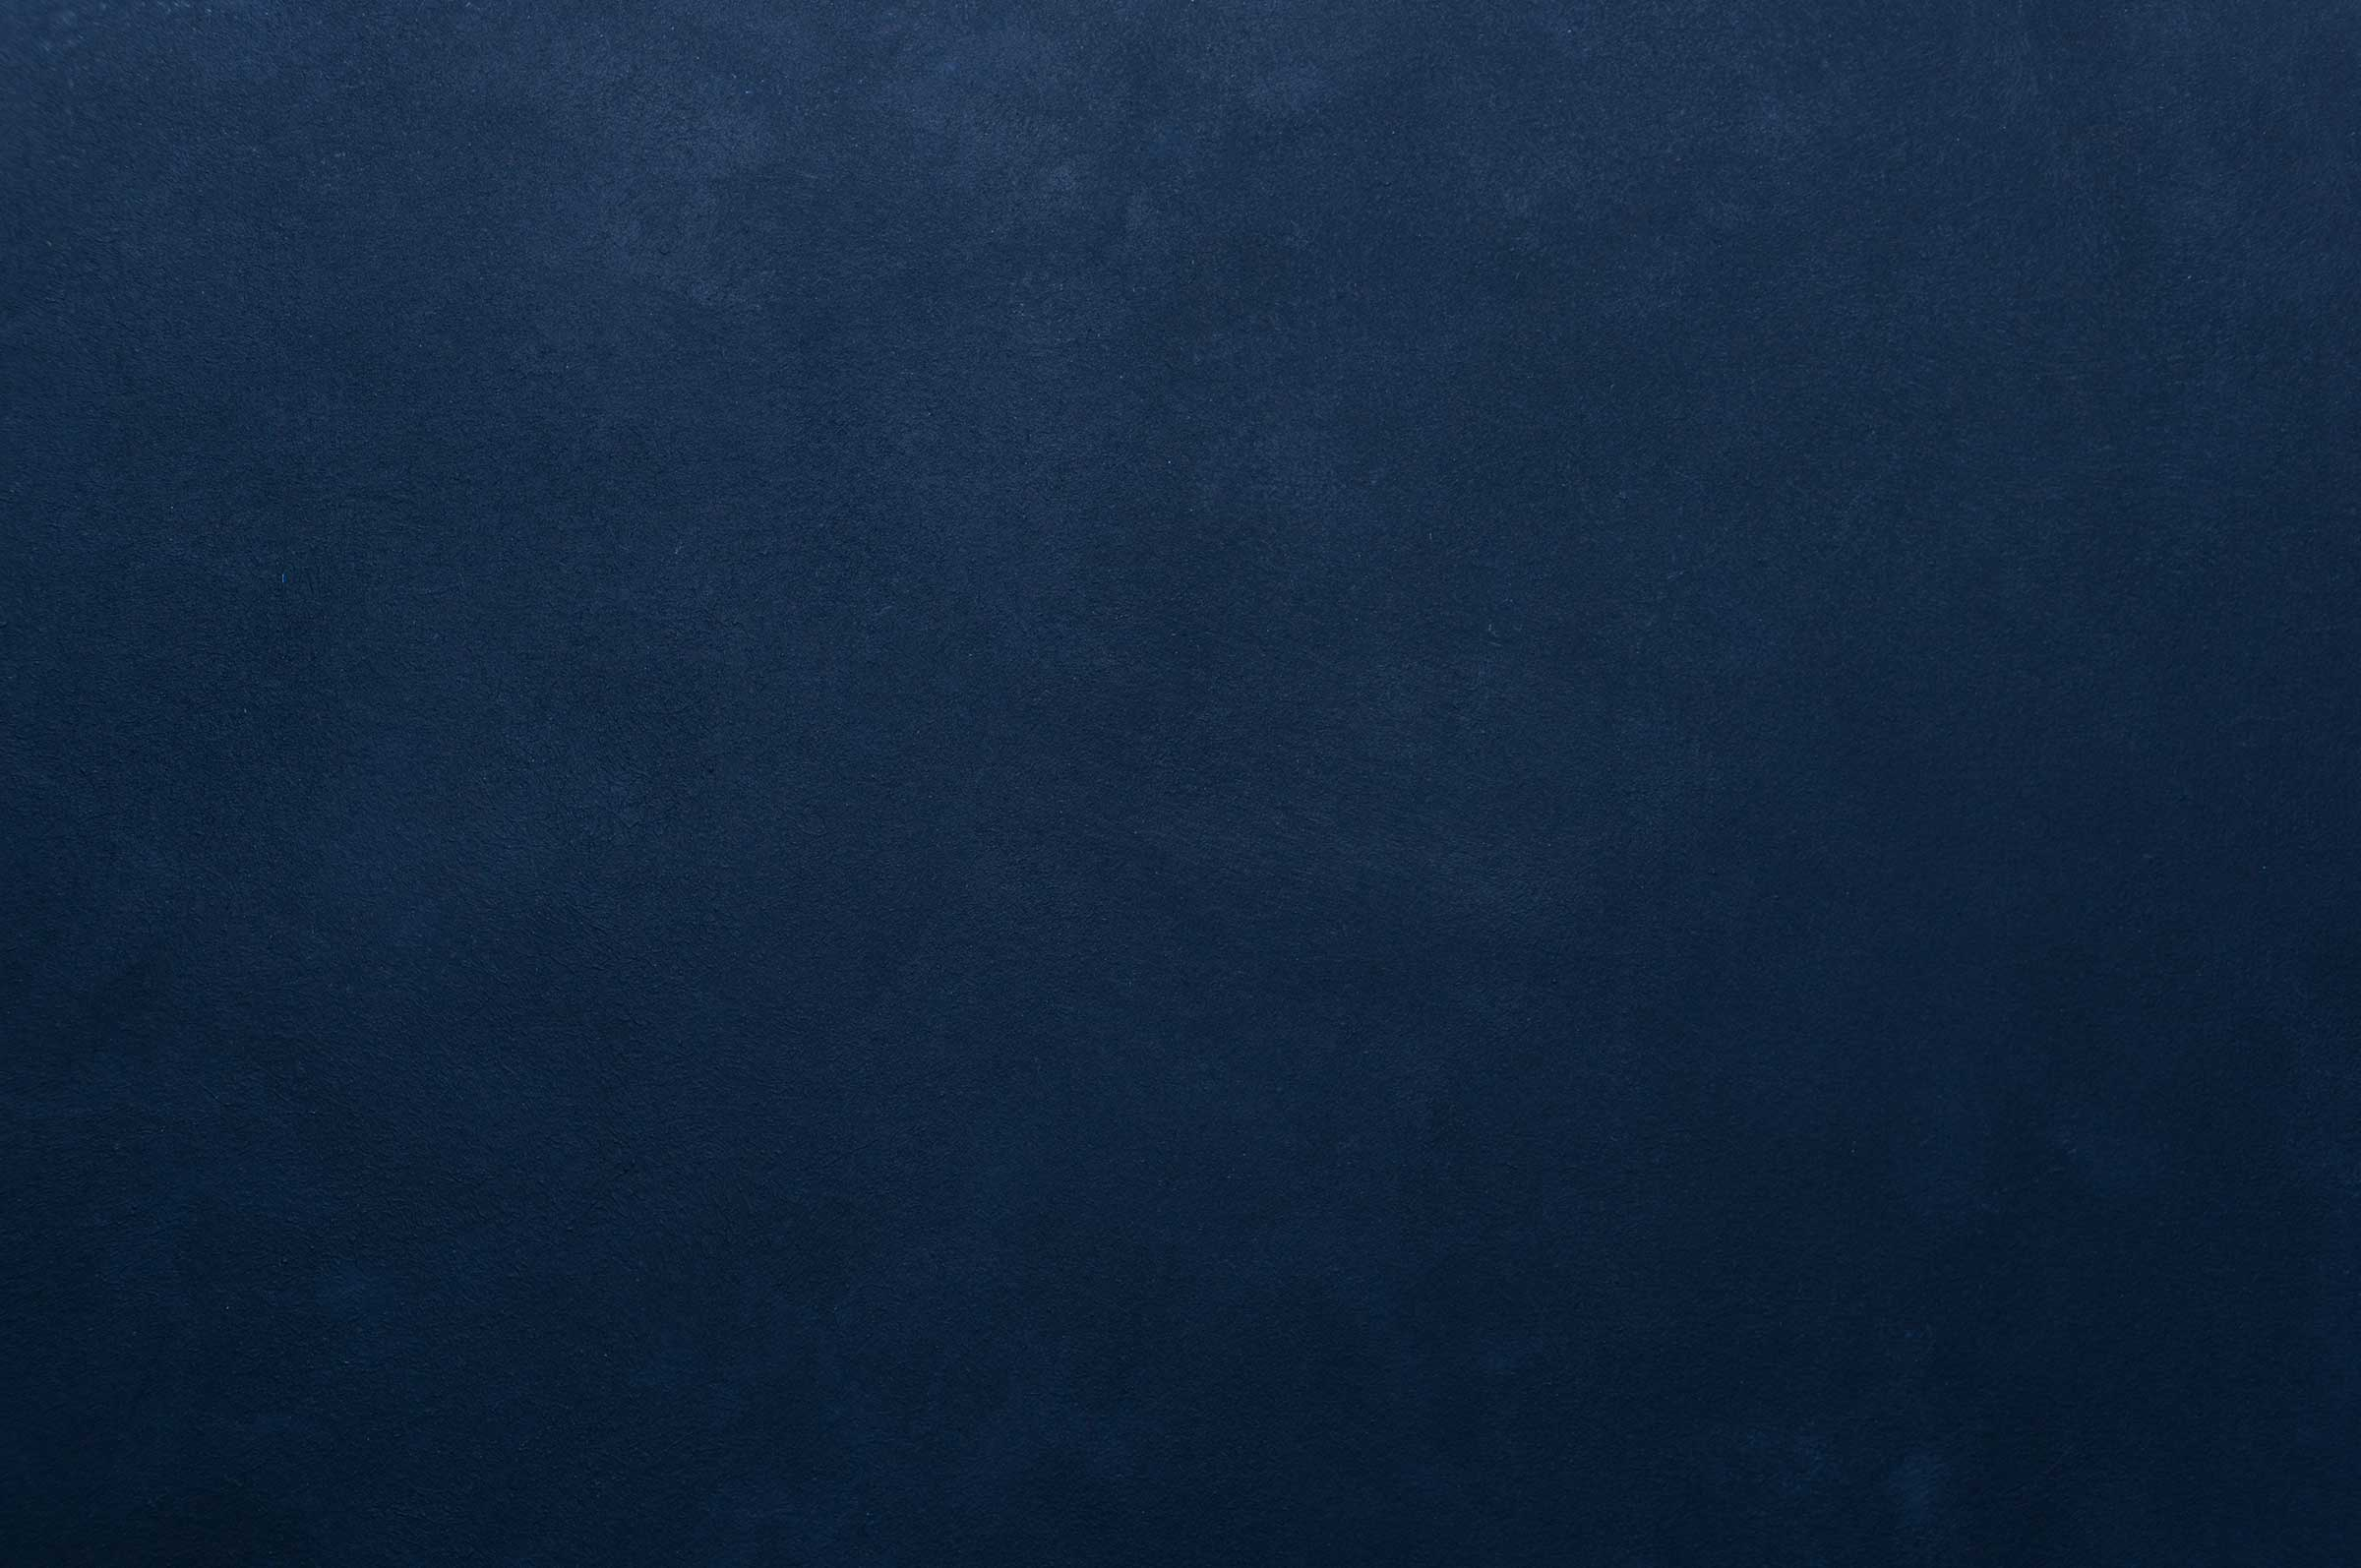 SignUpGenius Enterprise dark blue background